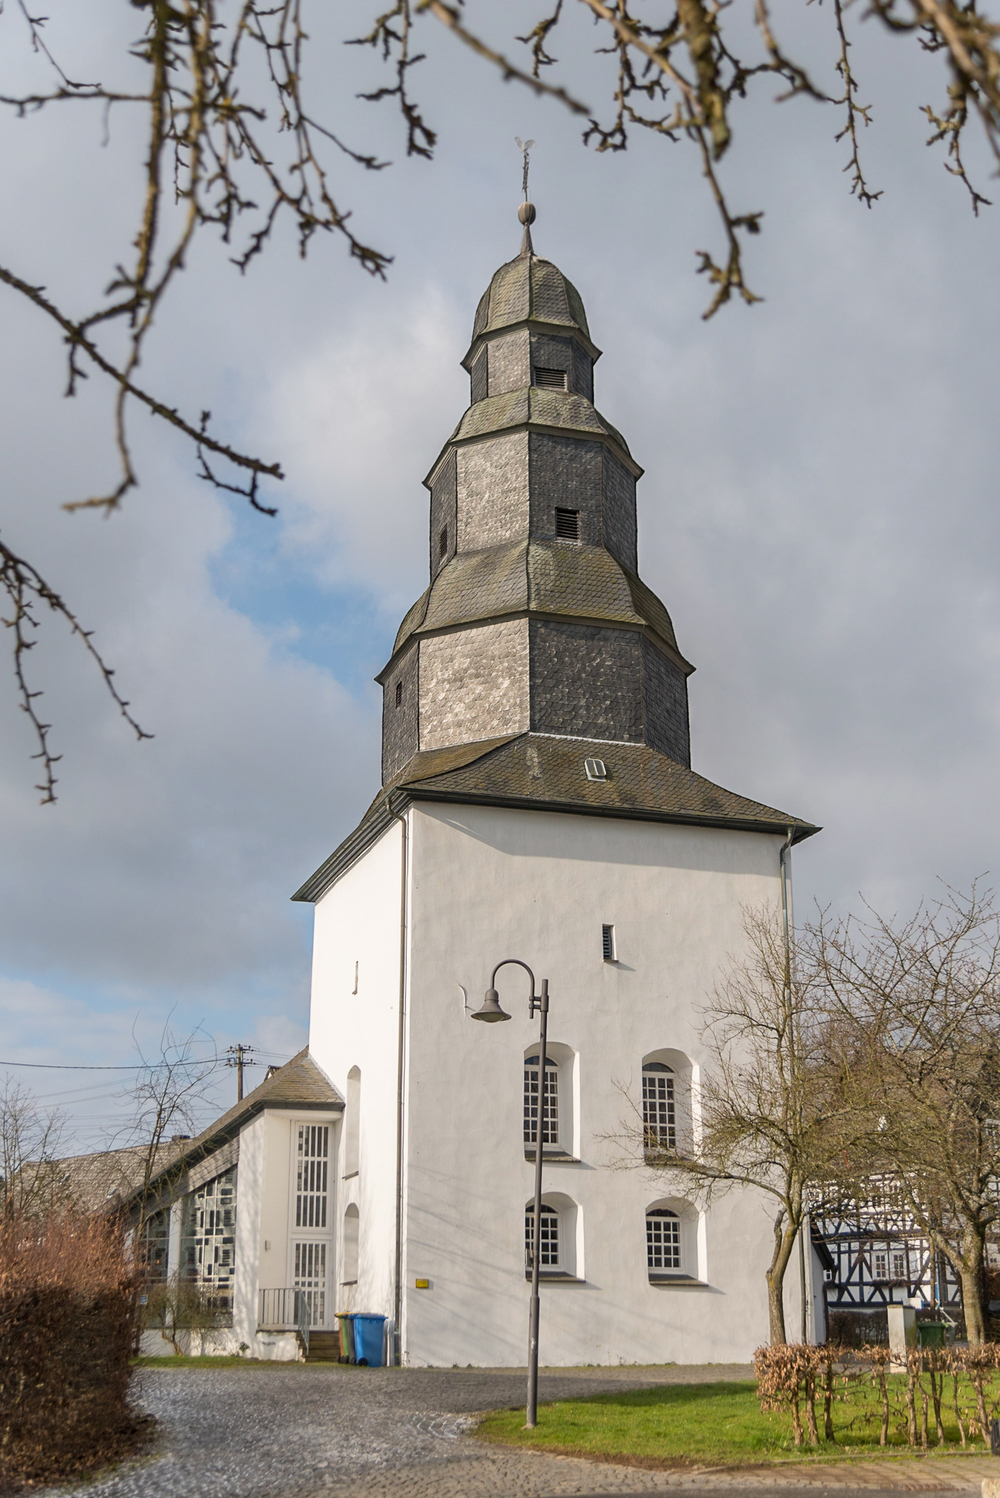 One of Holzhausen's most unique and recognizable structures, the state church's octagonal, slate-shingled steeple rises in the heart of the old town center.